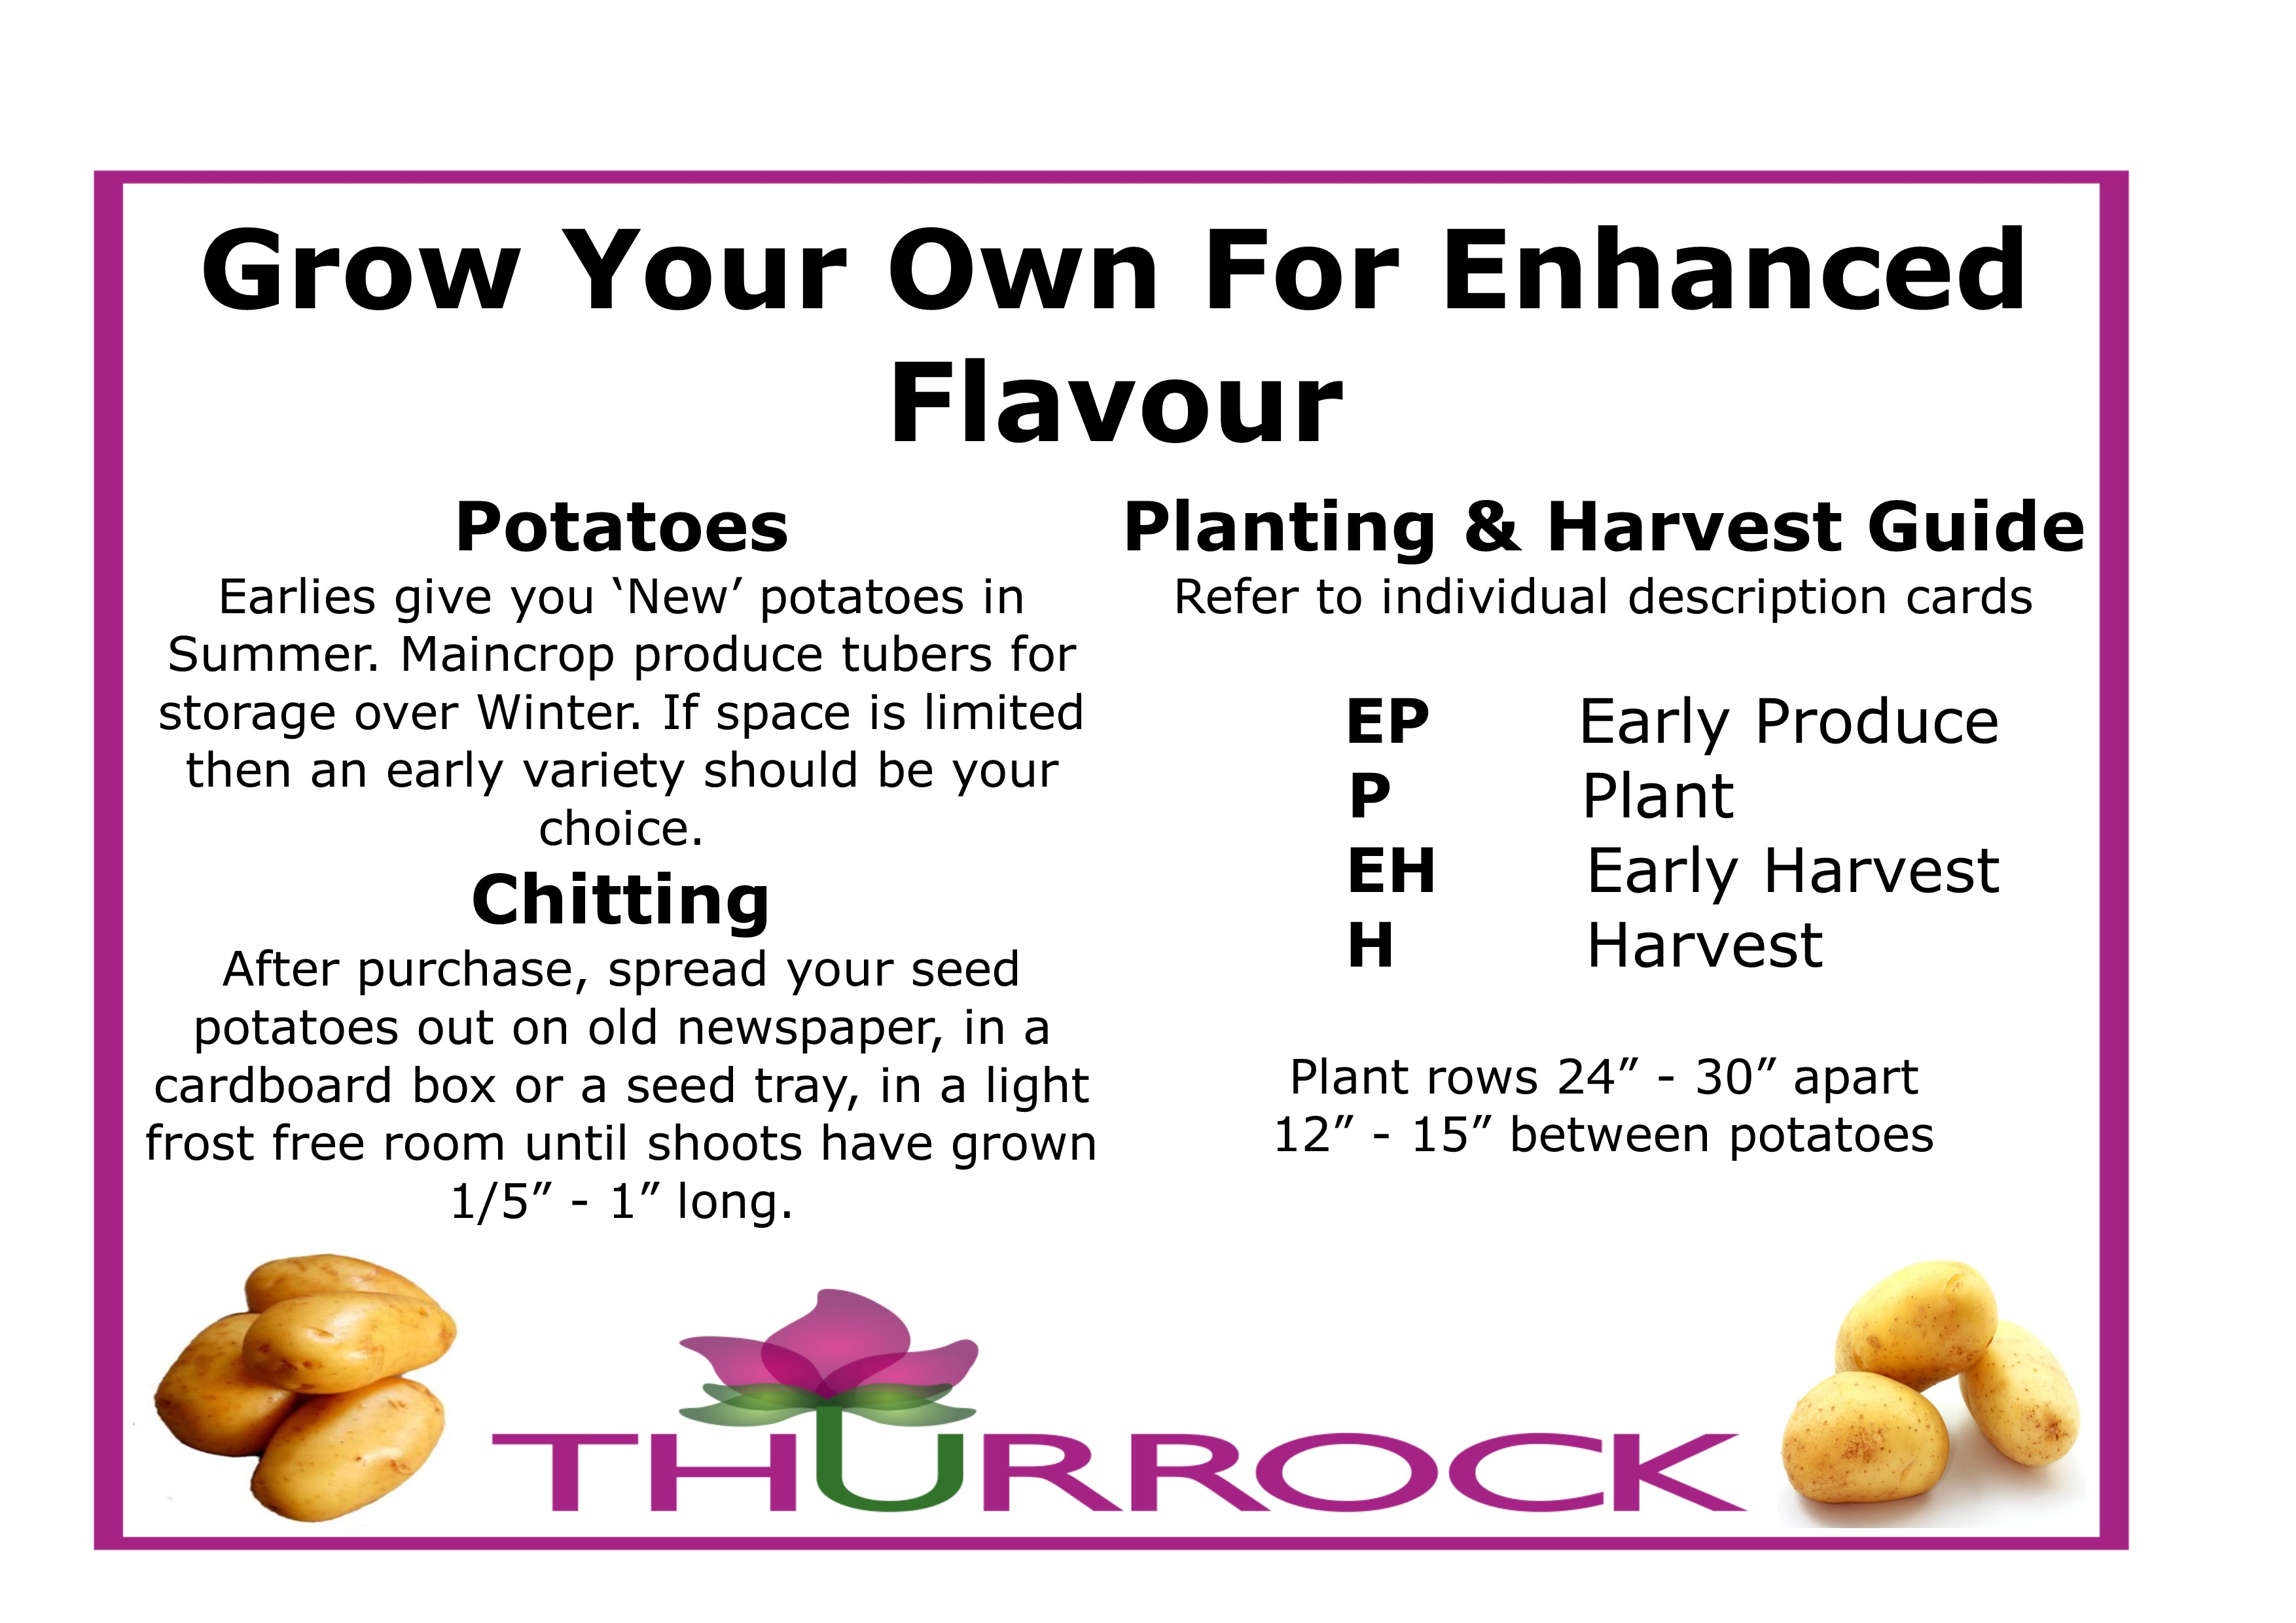 Grow Your Own For Enhanced Flavour